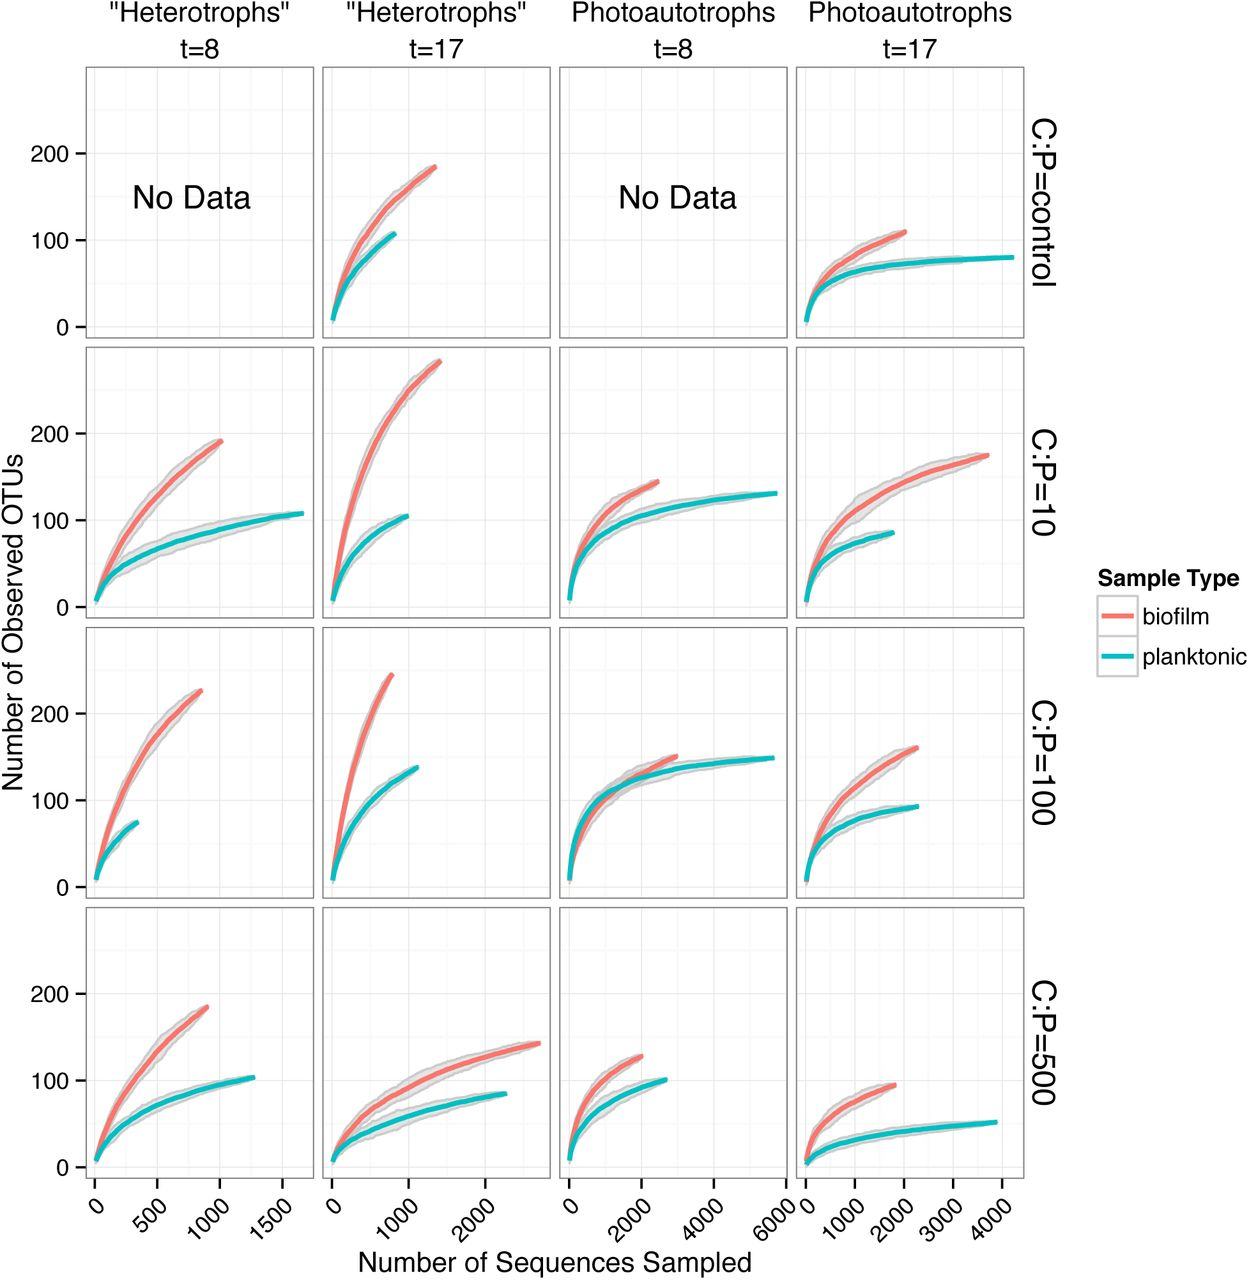 The effect of carbon subsidies on marine planktonic niche